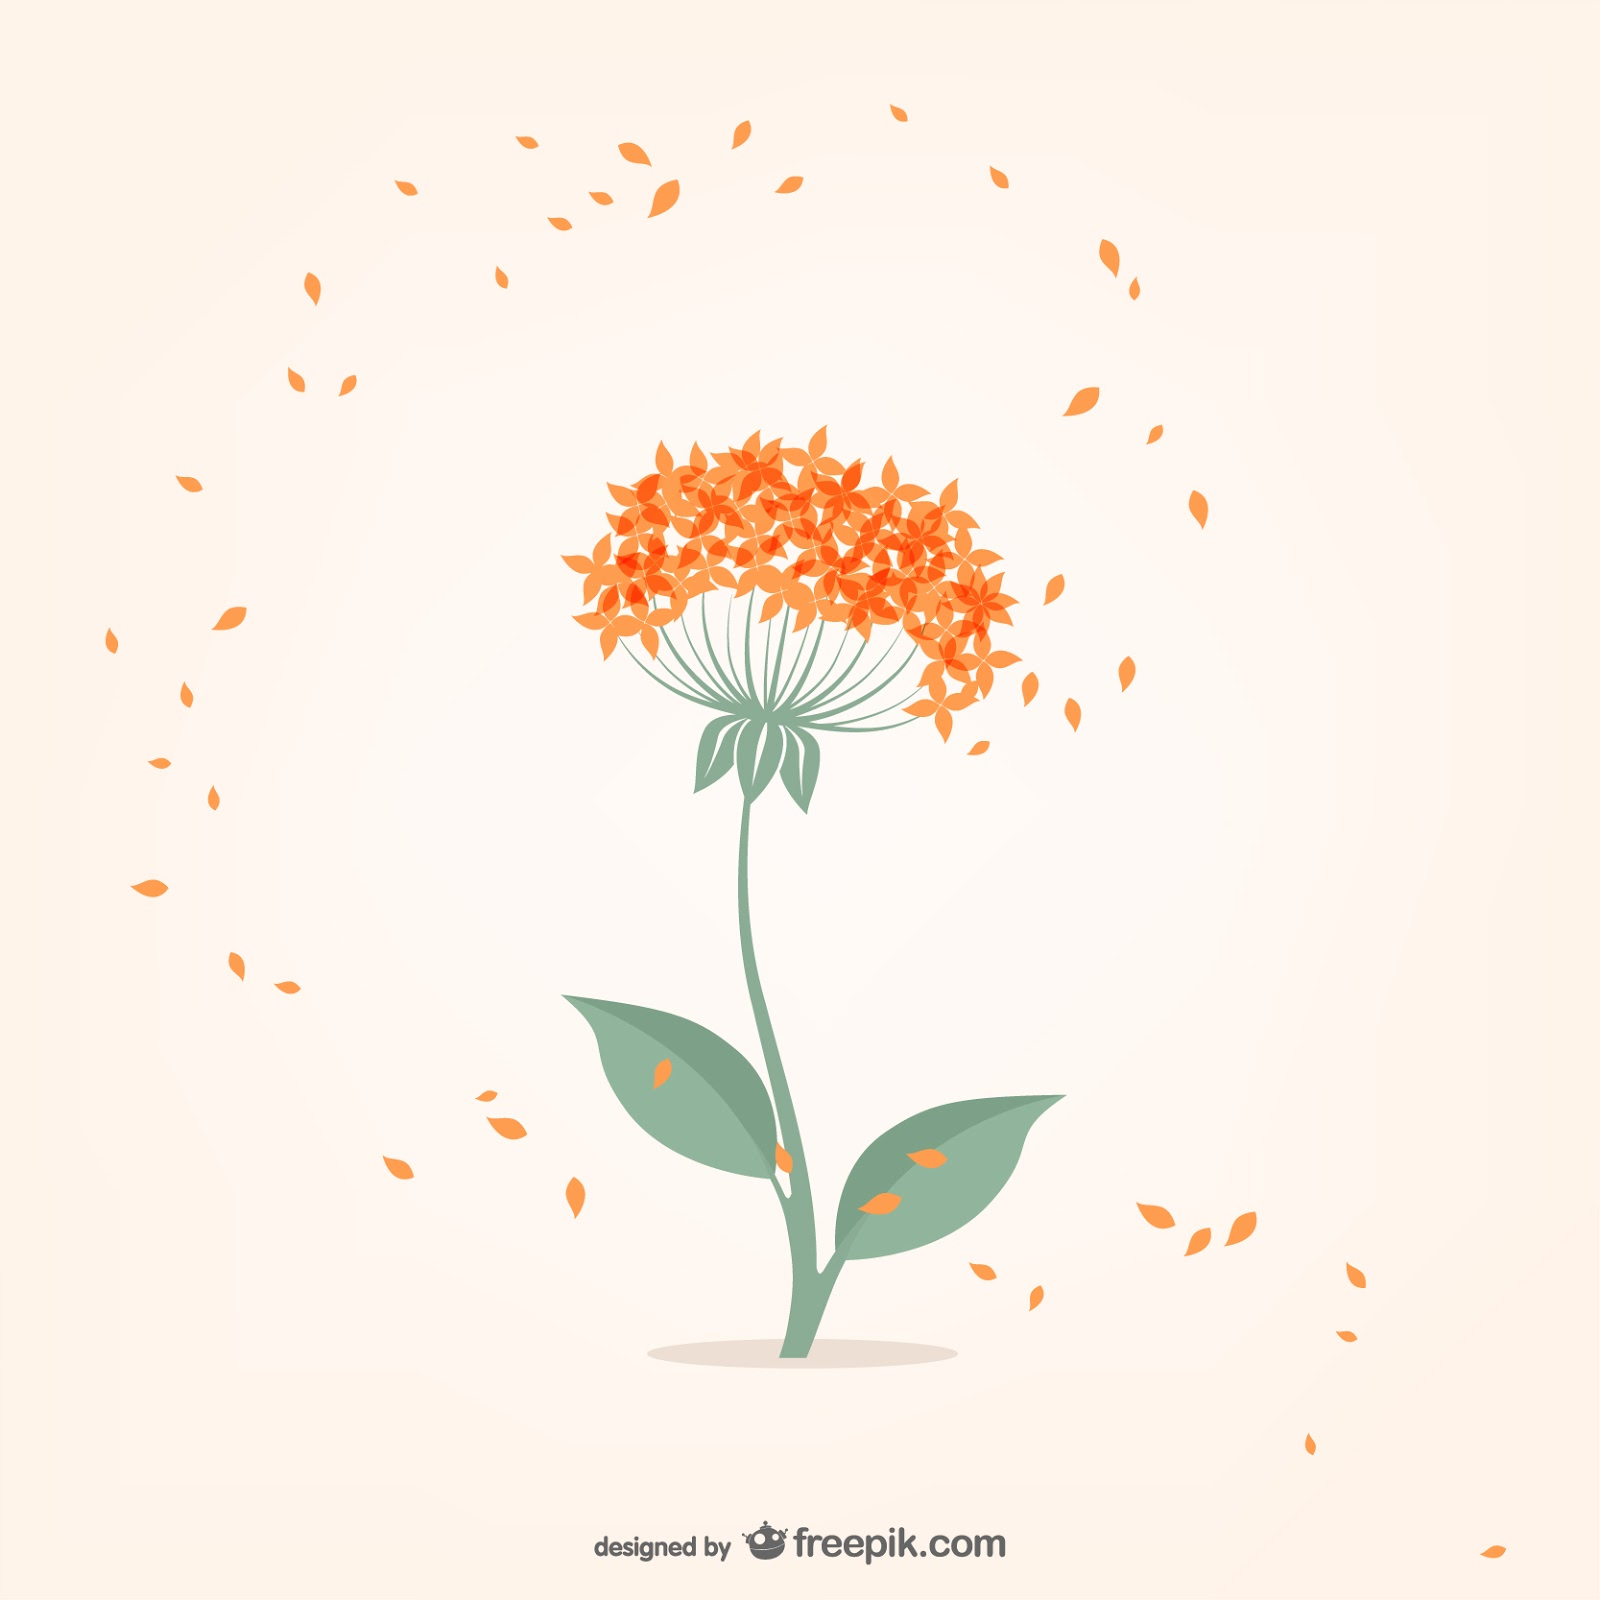 Minimal Flower With Orange Small Petals Free Download Vector CDR, AI, EPS and PNG Formats